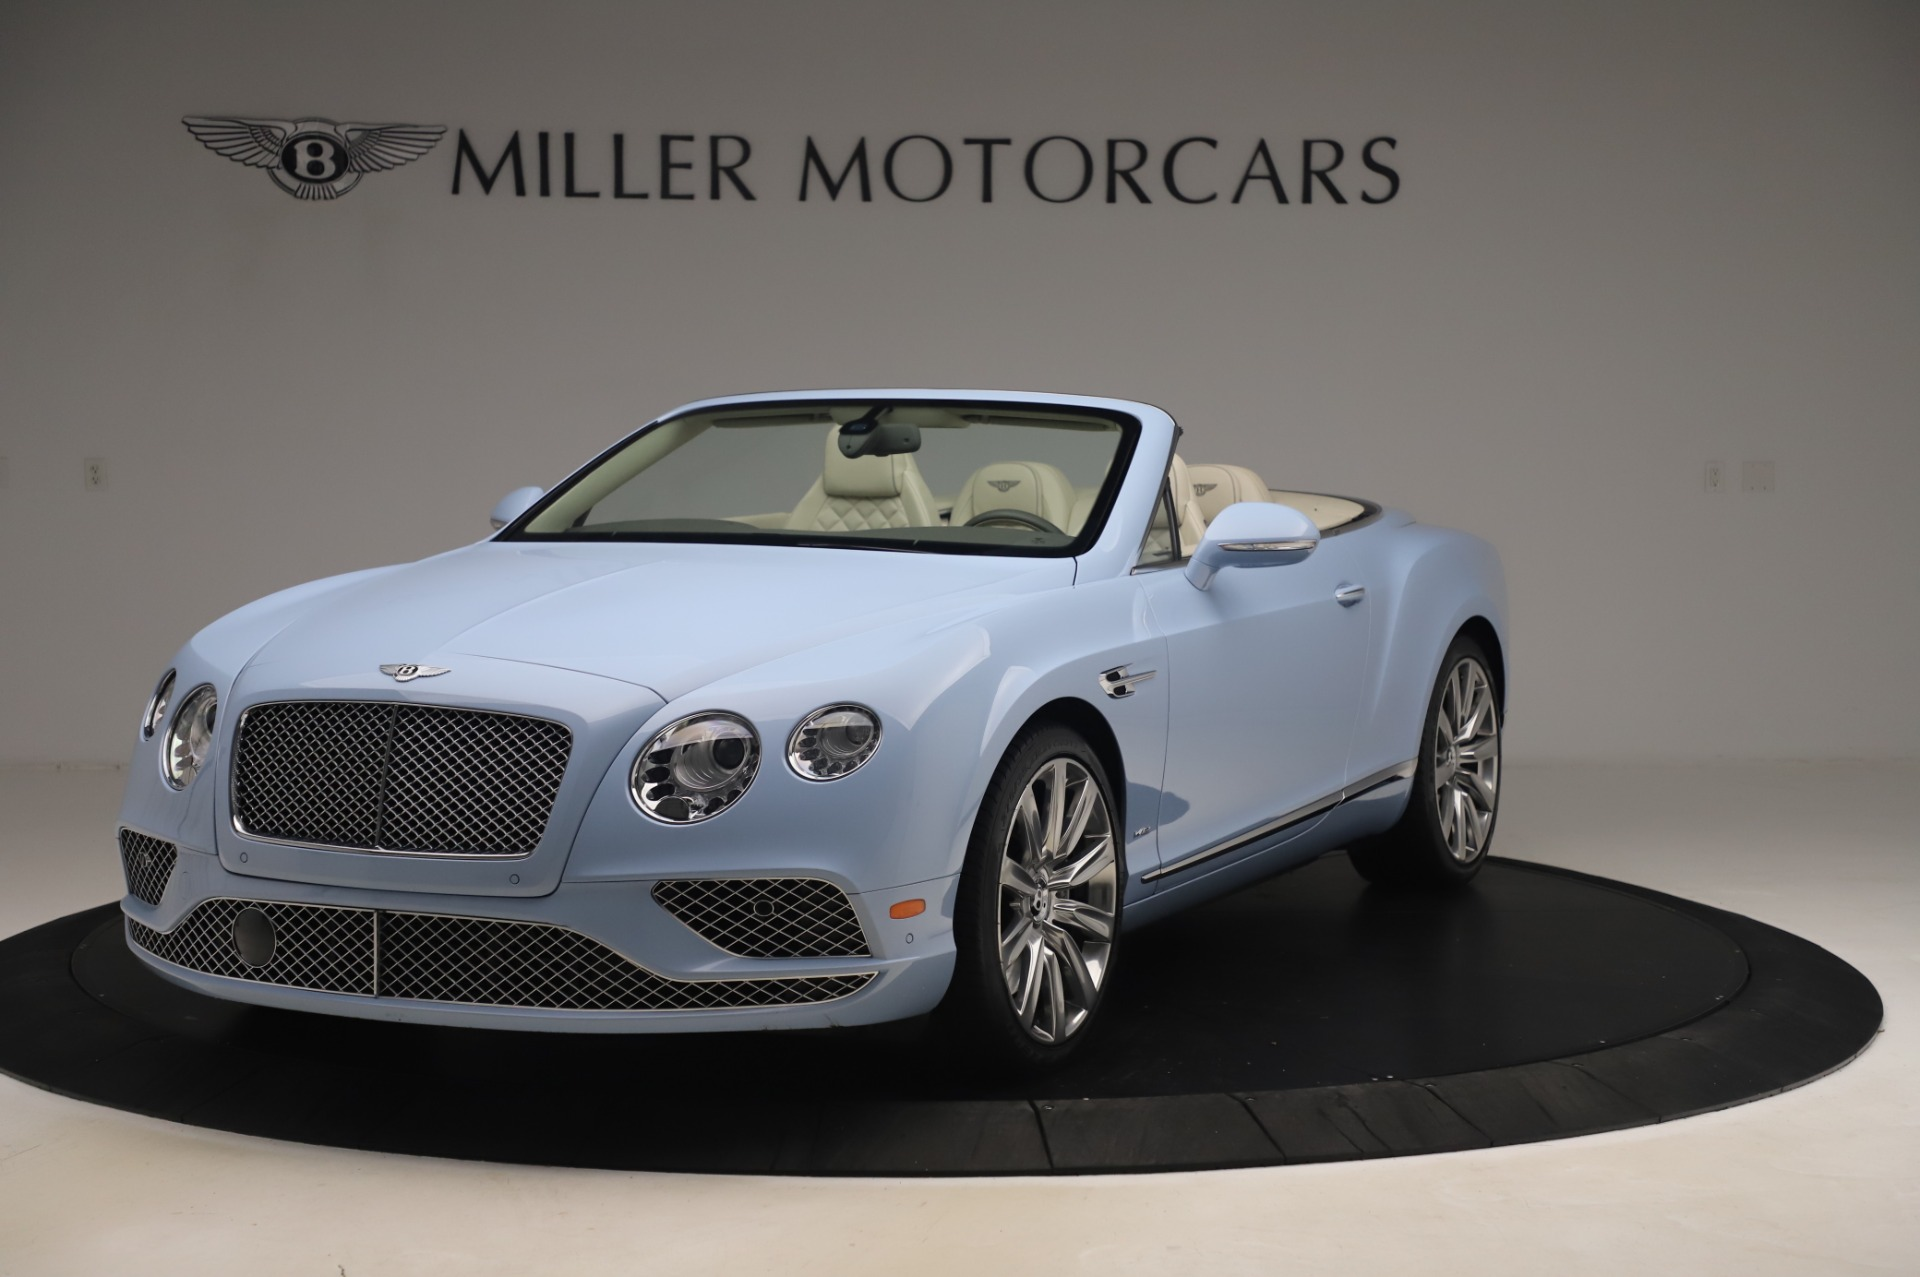 Used 2017 Bentley Continental GT W12 for sale Sold at Bentley Greenwich in Greenwich CT 06830 1